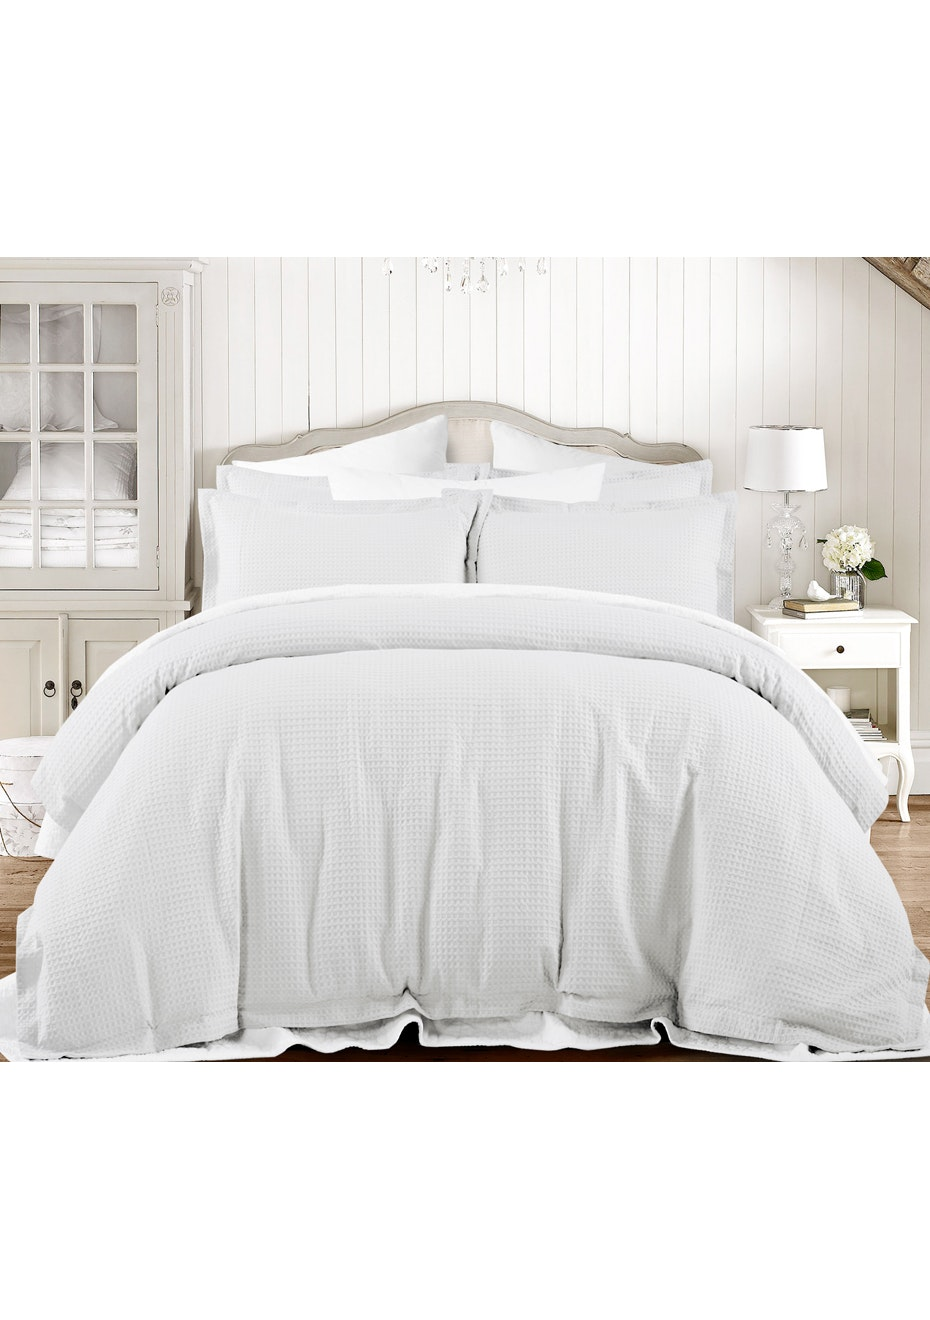 Grand Atelier White Hotel Waffle Quilt Cover Set- King Bed